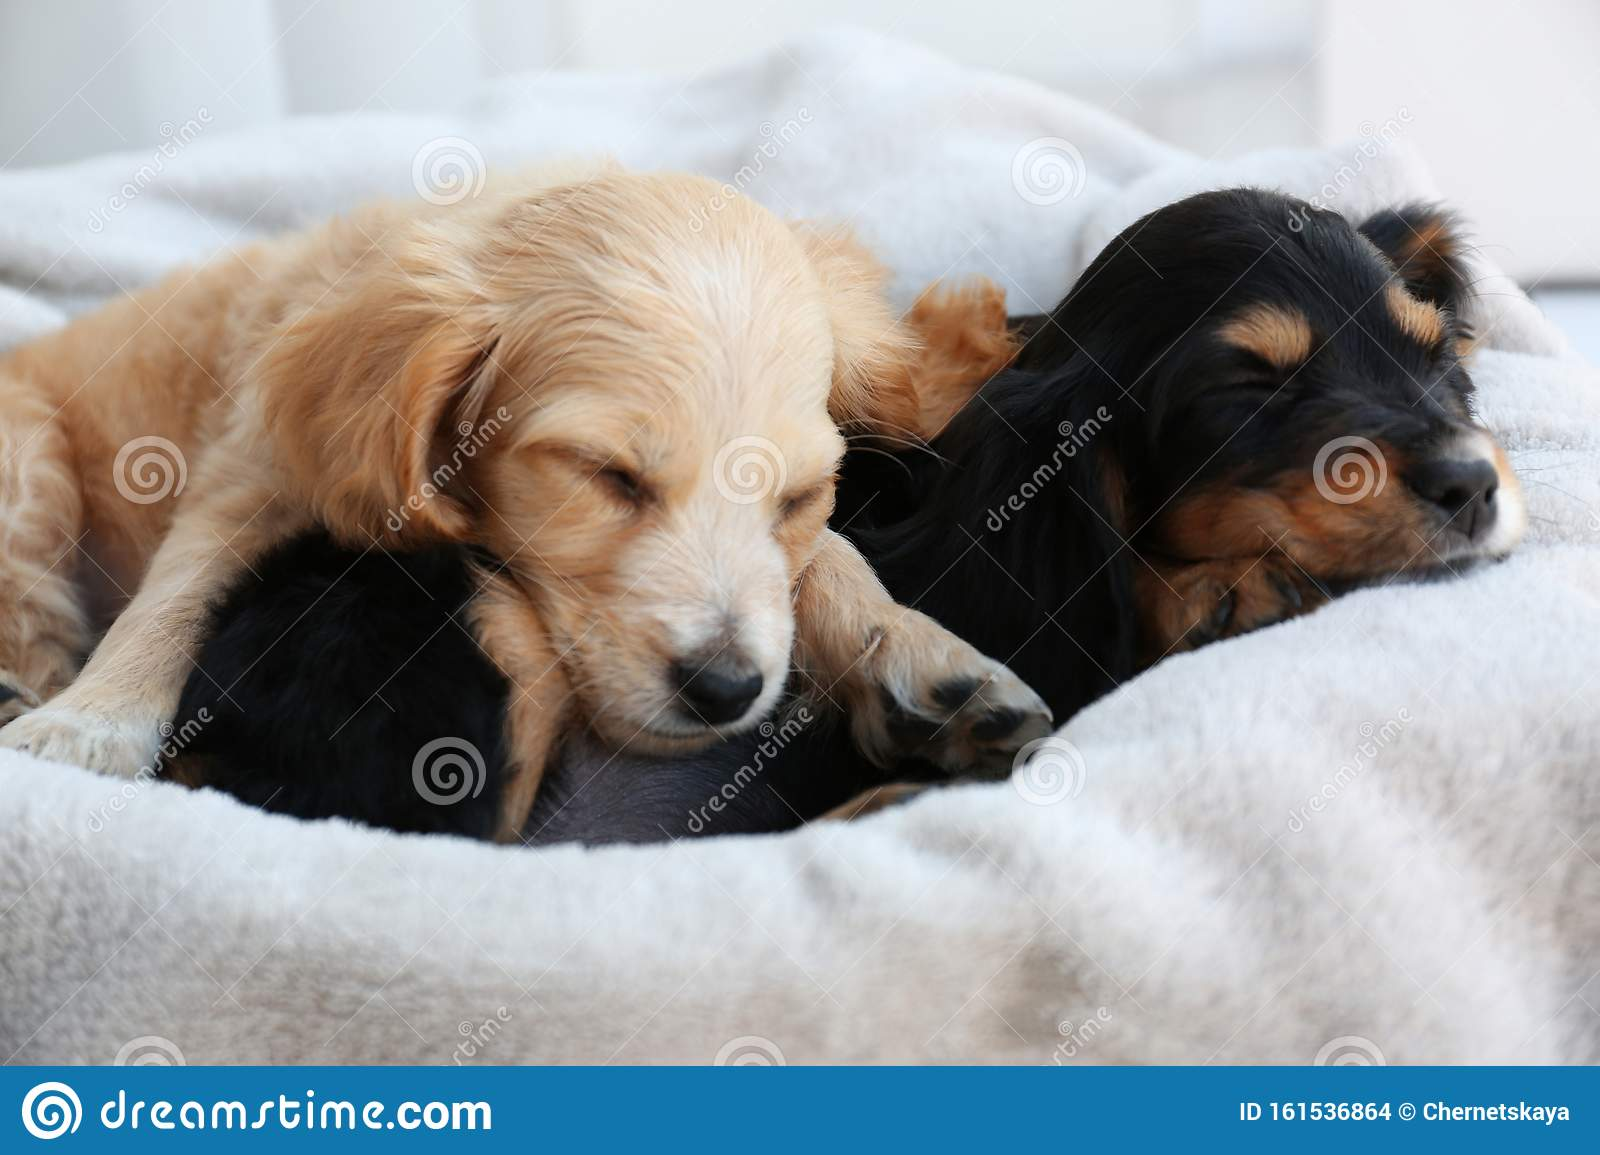 Cute English Cocker Spaniel Puppies Sleeping Stock Photo Image Of Indoors Furry 161536864